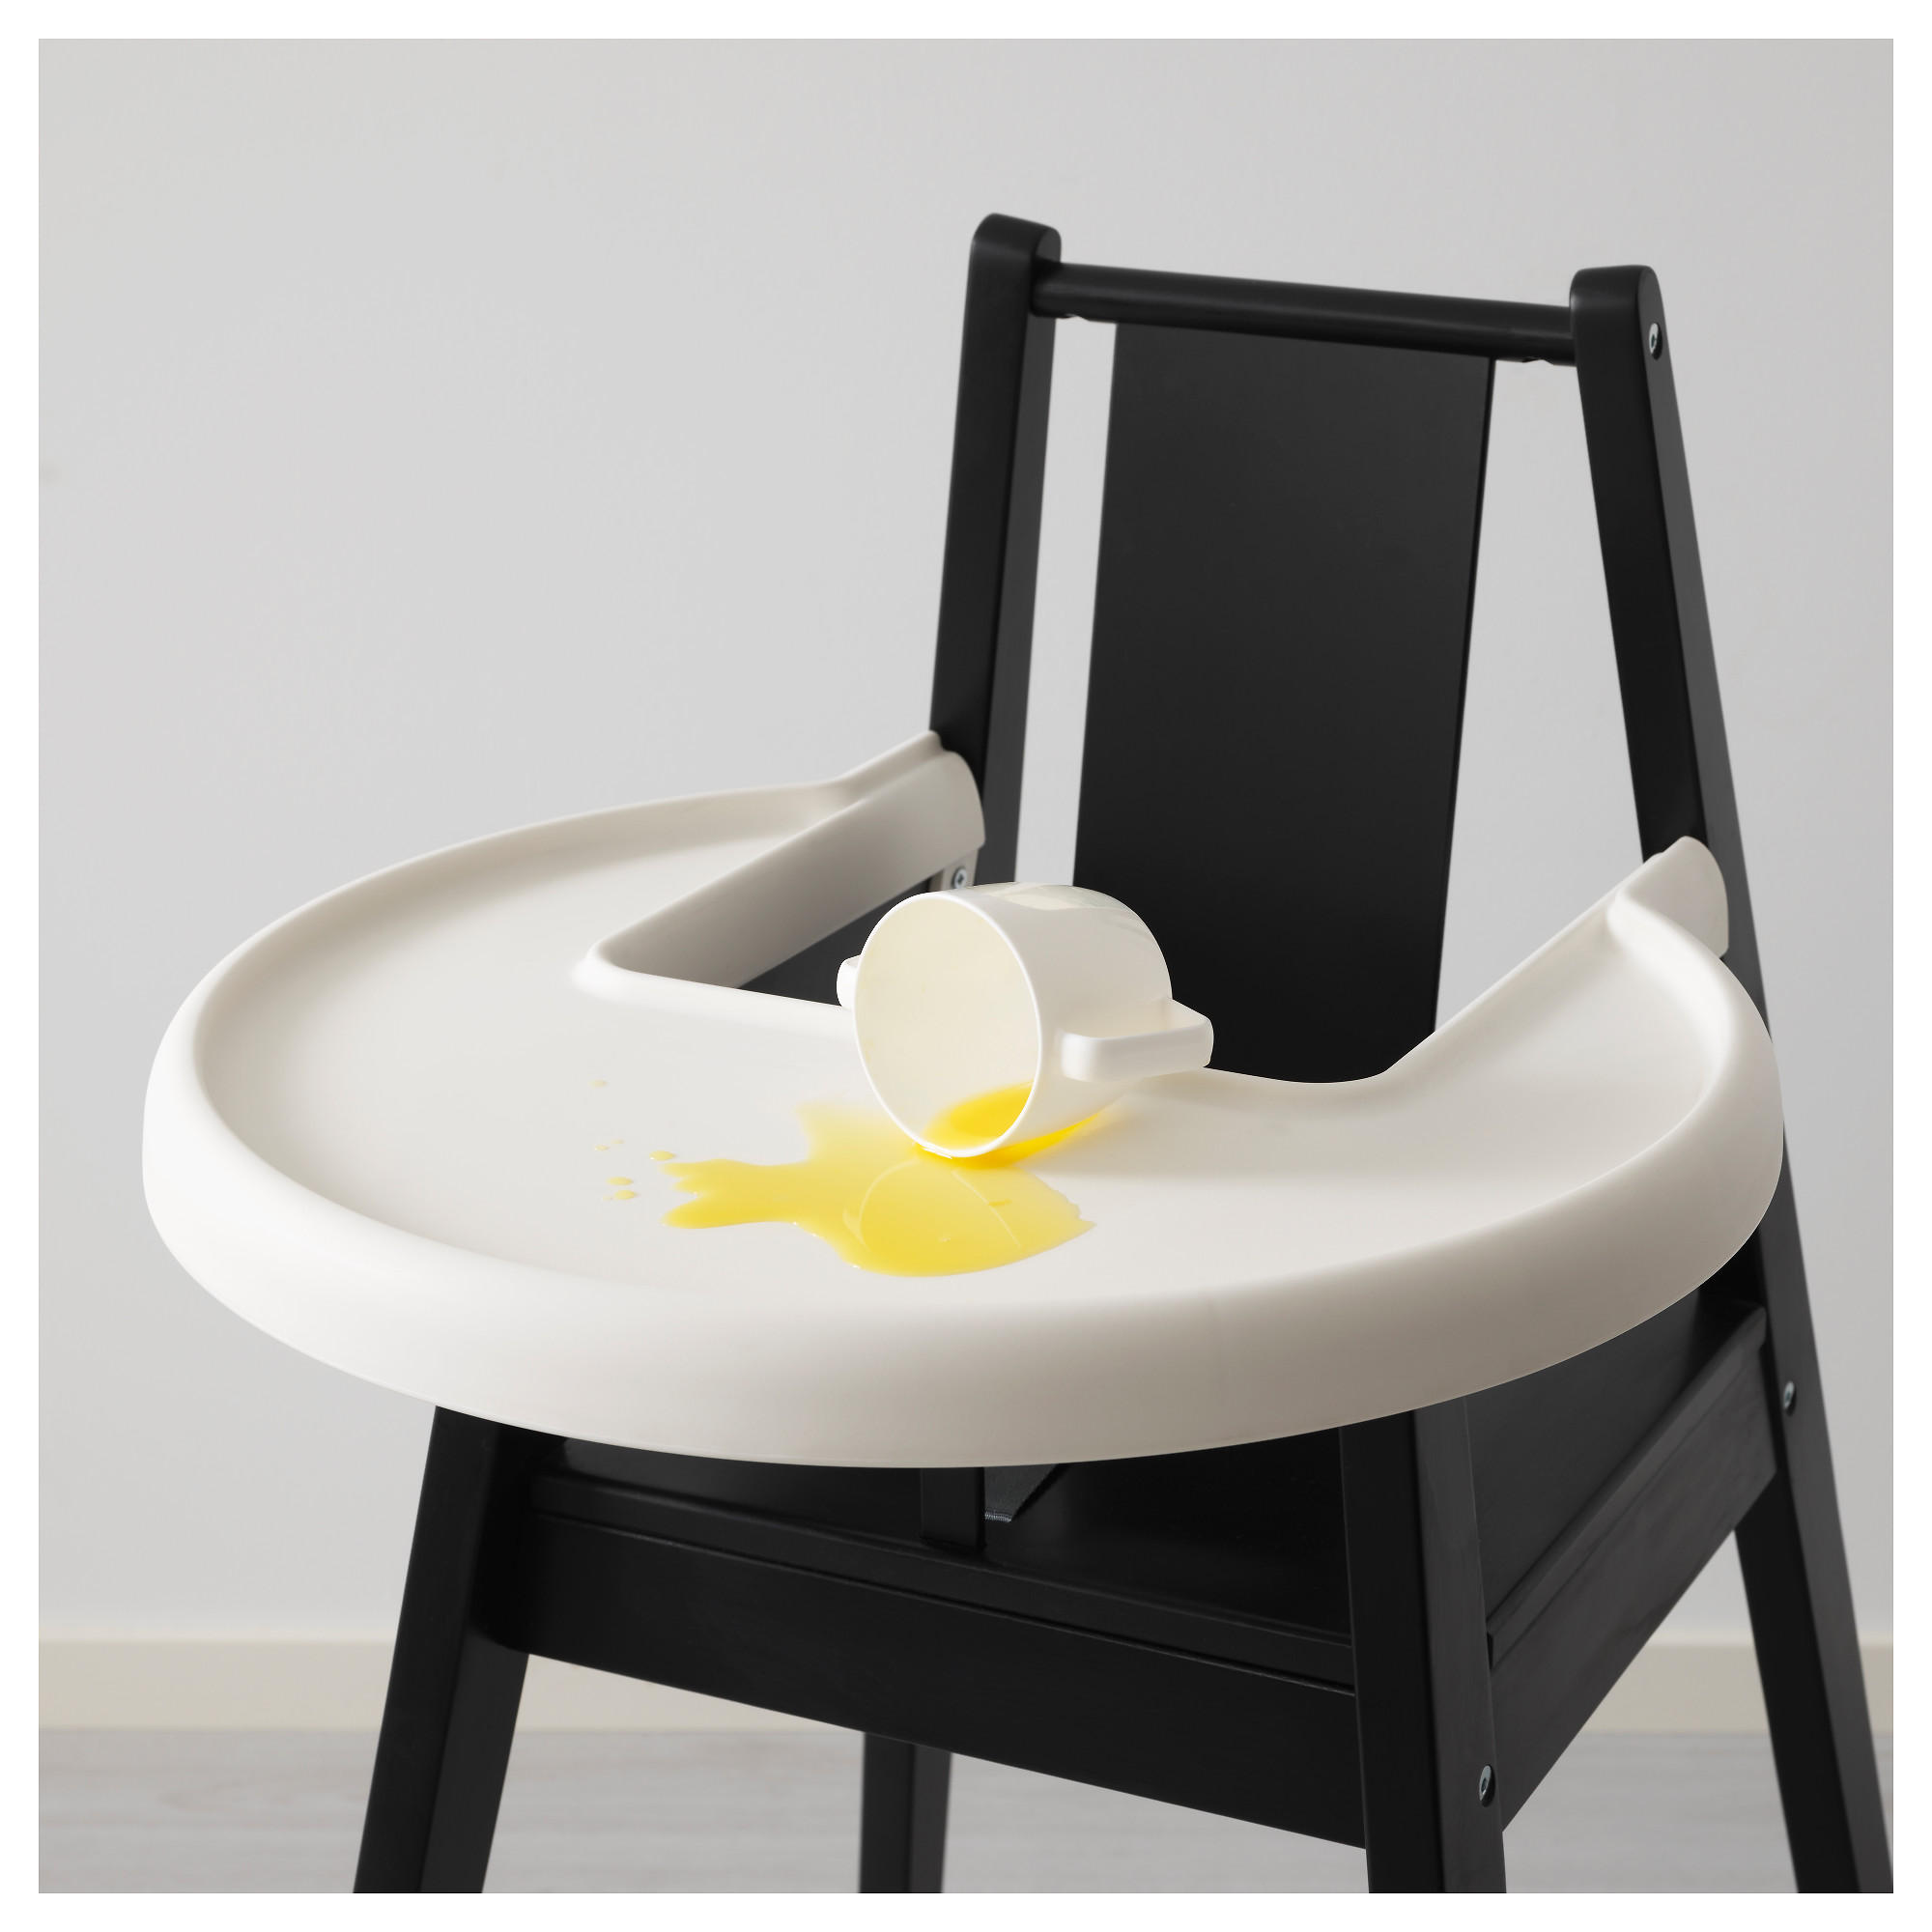 BLÅMES High Chair With Tray   IKEA